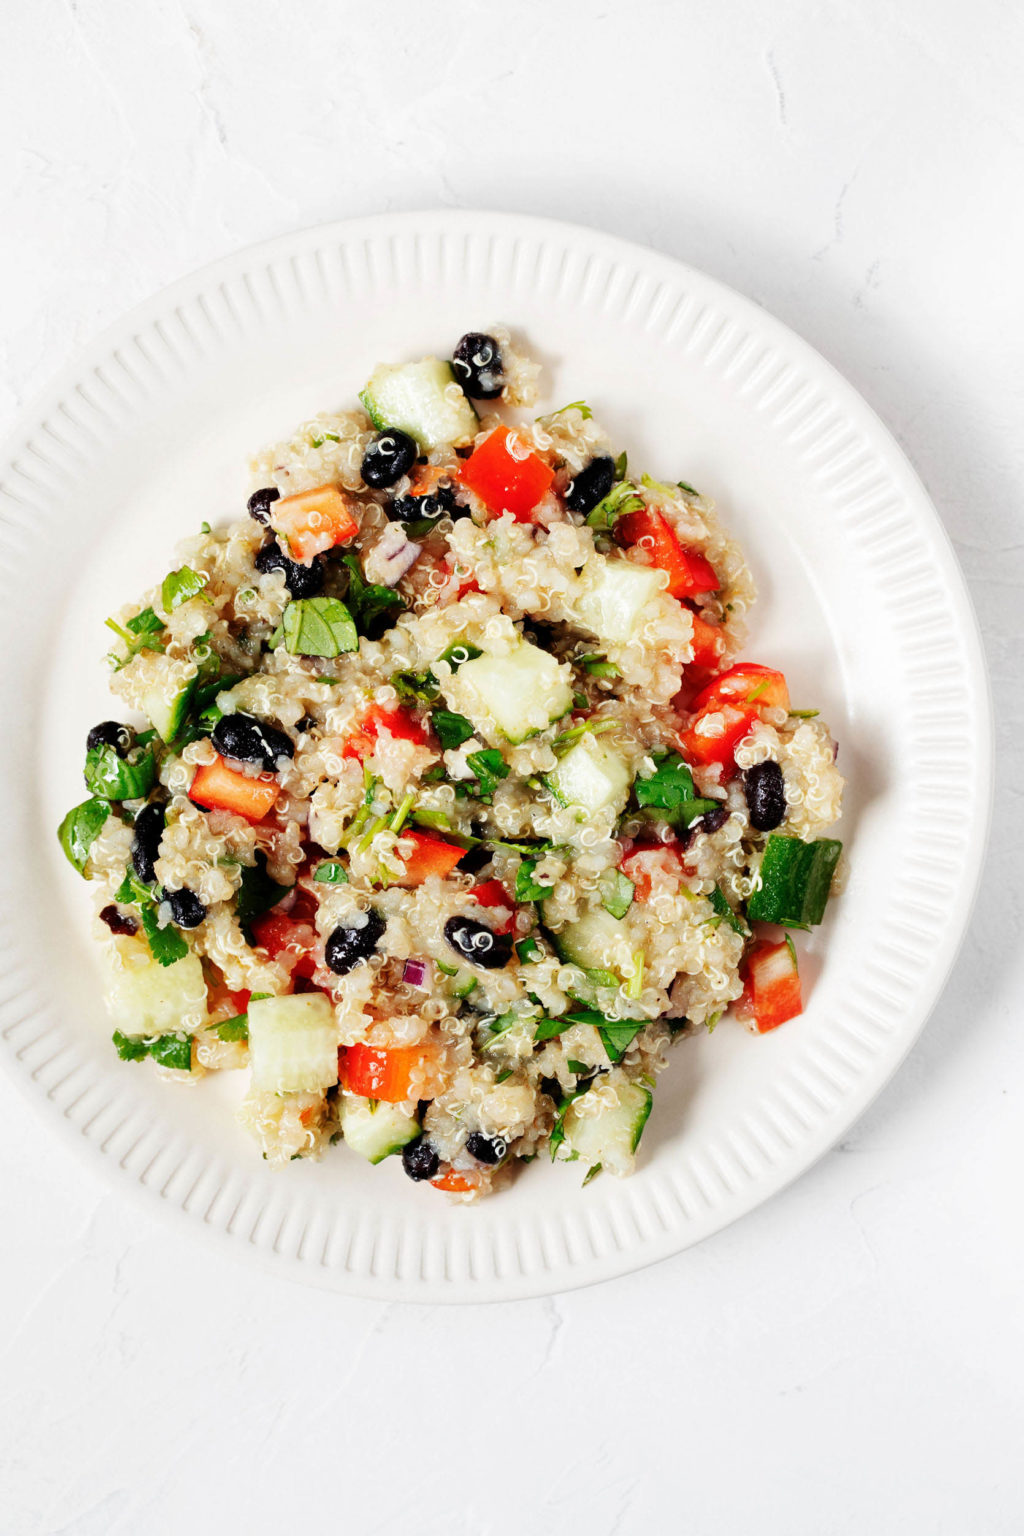 A white salad plate with a fluted rim has been piled with a plant-based grain salad. The salad is full of colorful vegetables and fresh herbs.